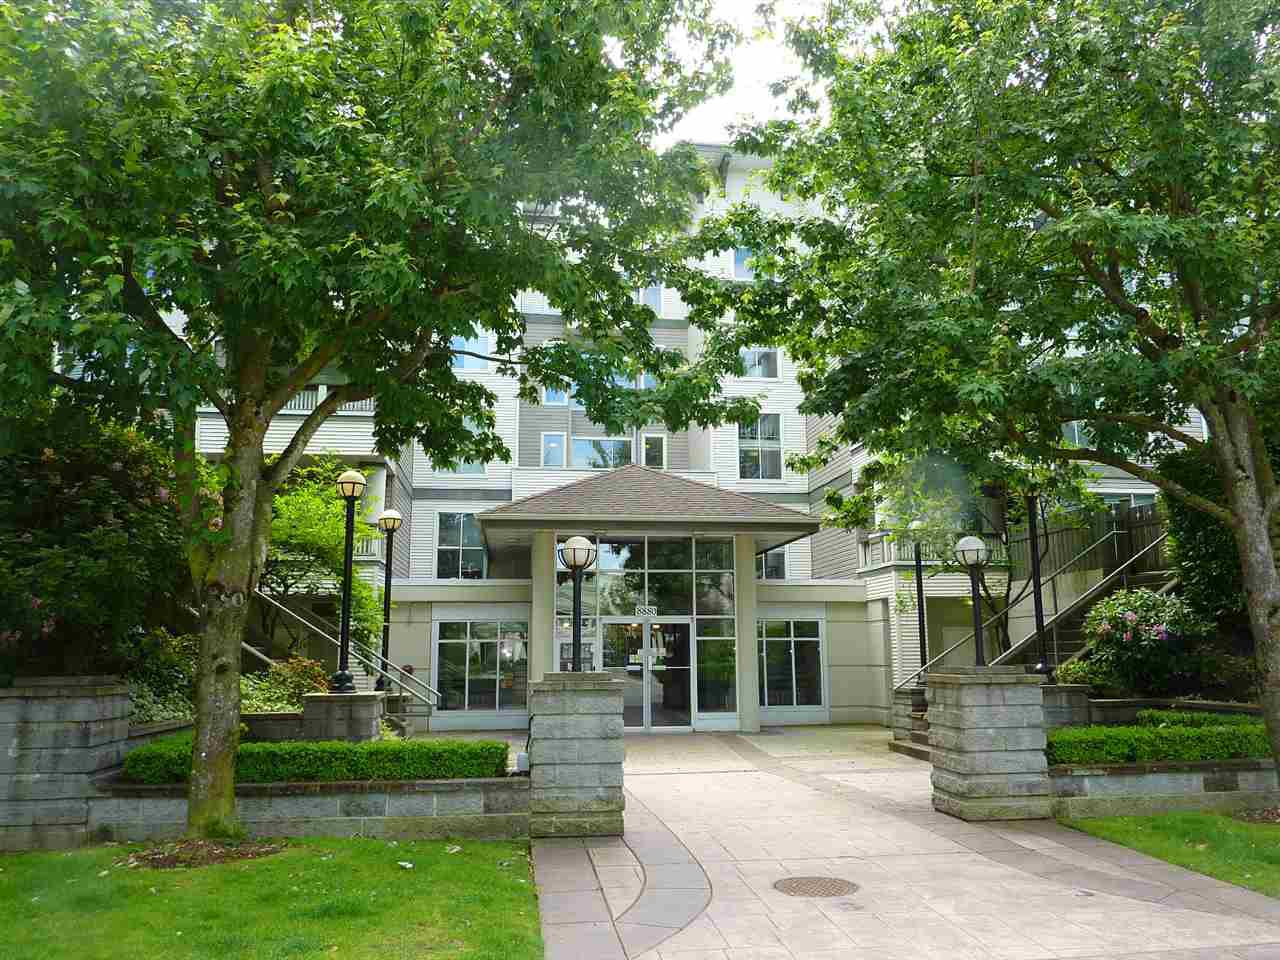 Main Photo: 122 8880 JONES ROAD in Richmond: Brighouse South Condo for sale : MLS®# R2177657